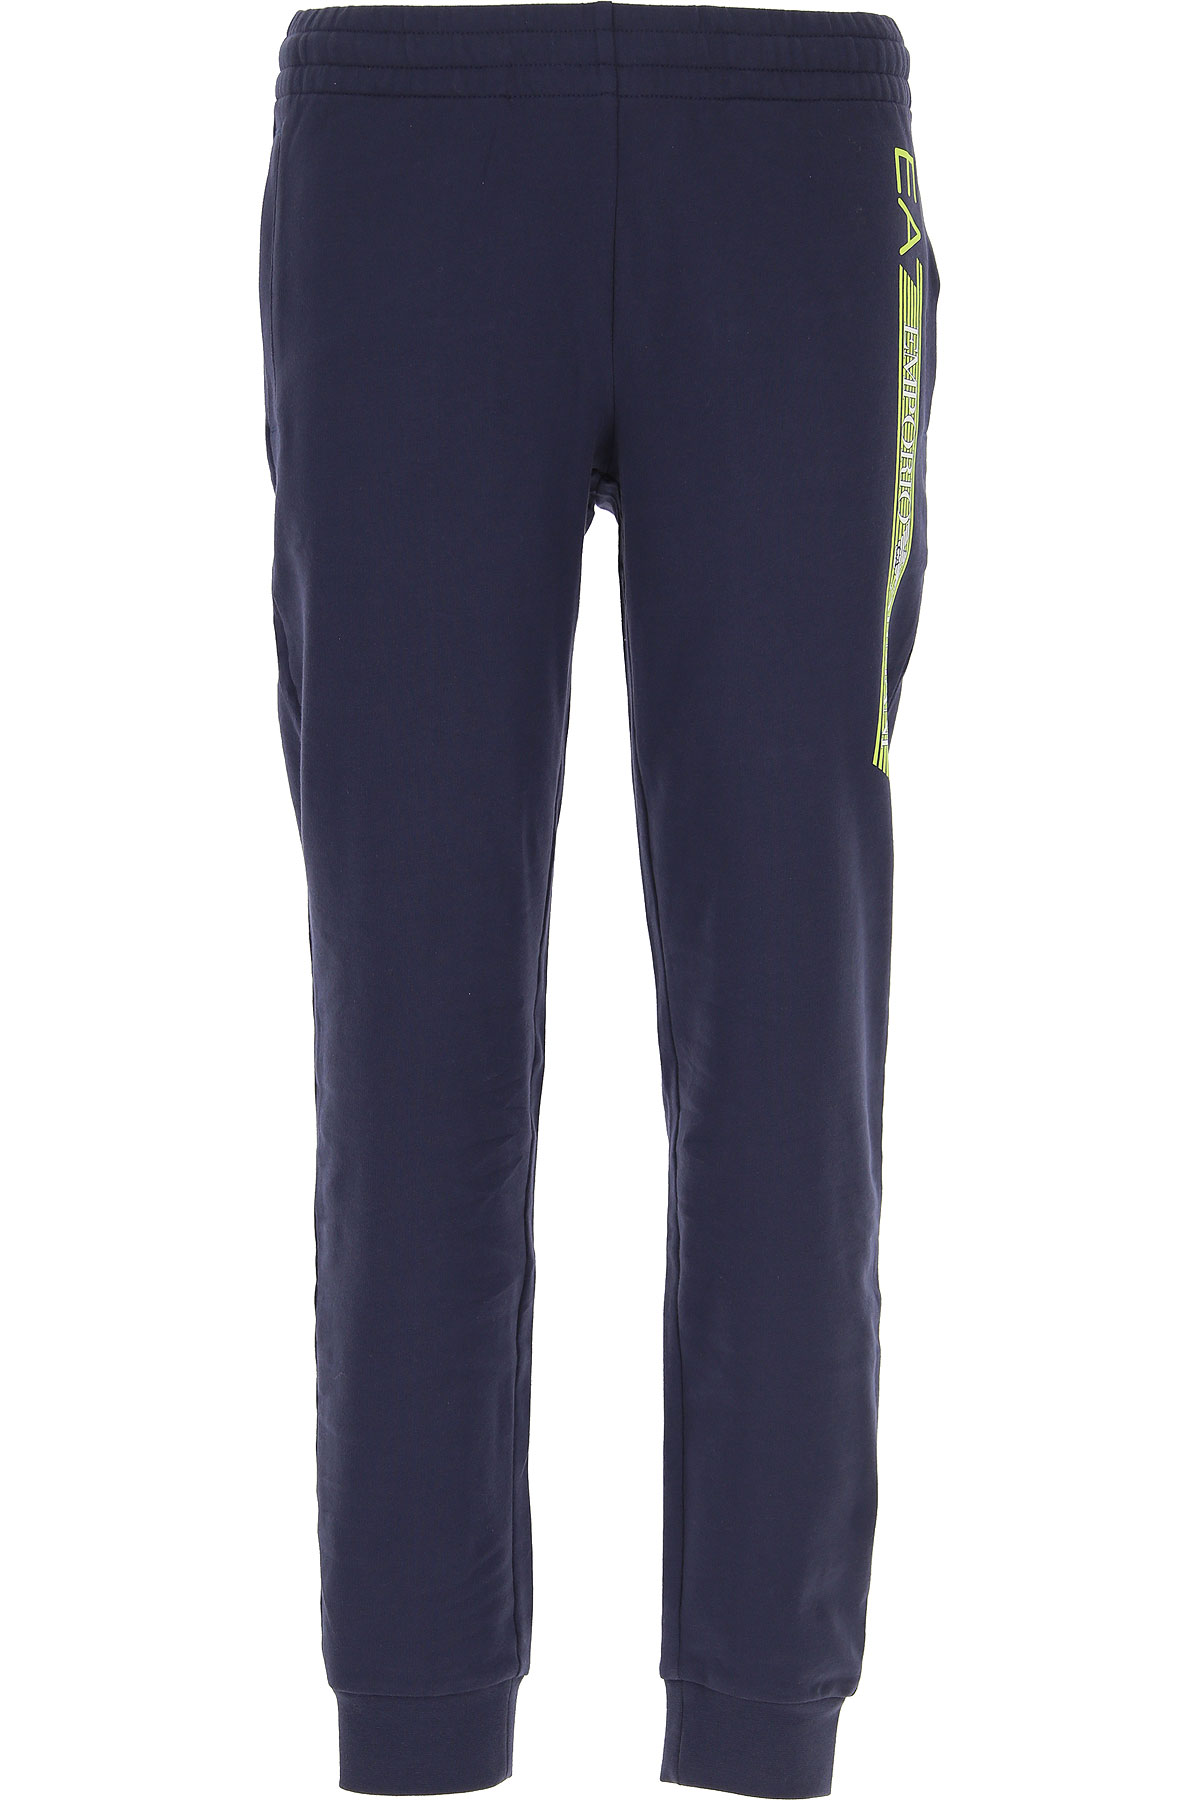 Emporio Armani Men's Sportswear for Gym Workouts and Running On Sale, Blue Navy, Cotton, 2019, L M S XL